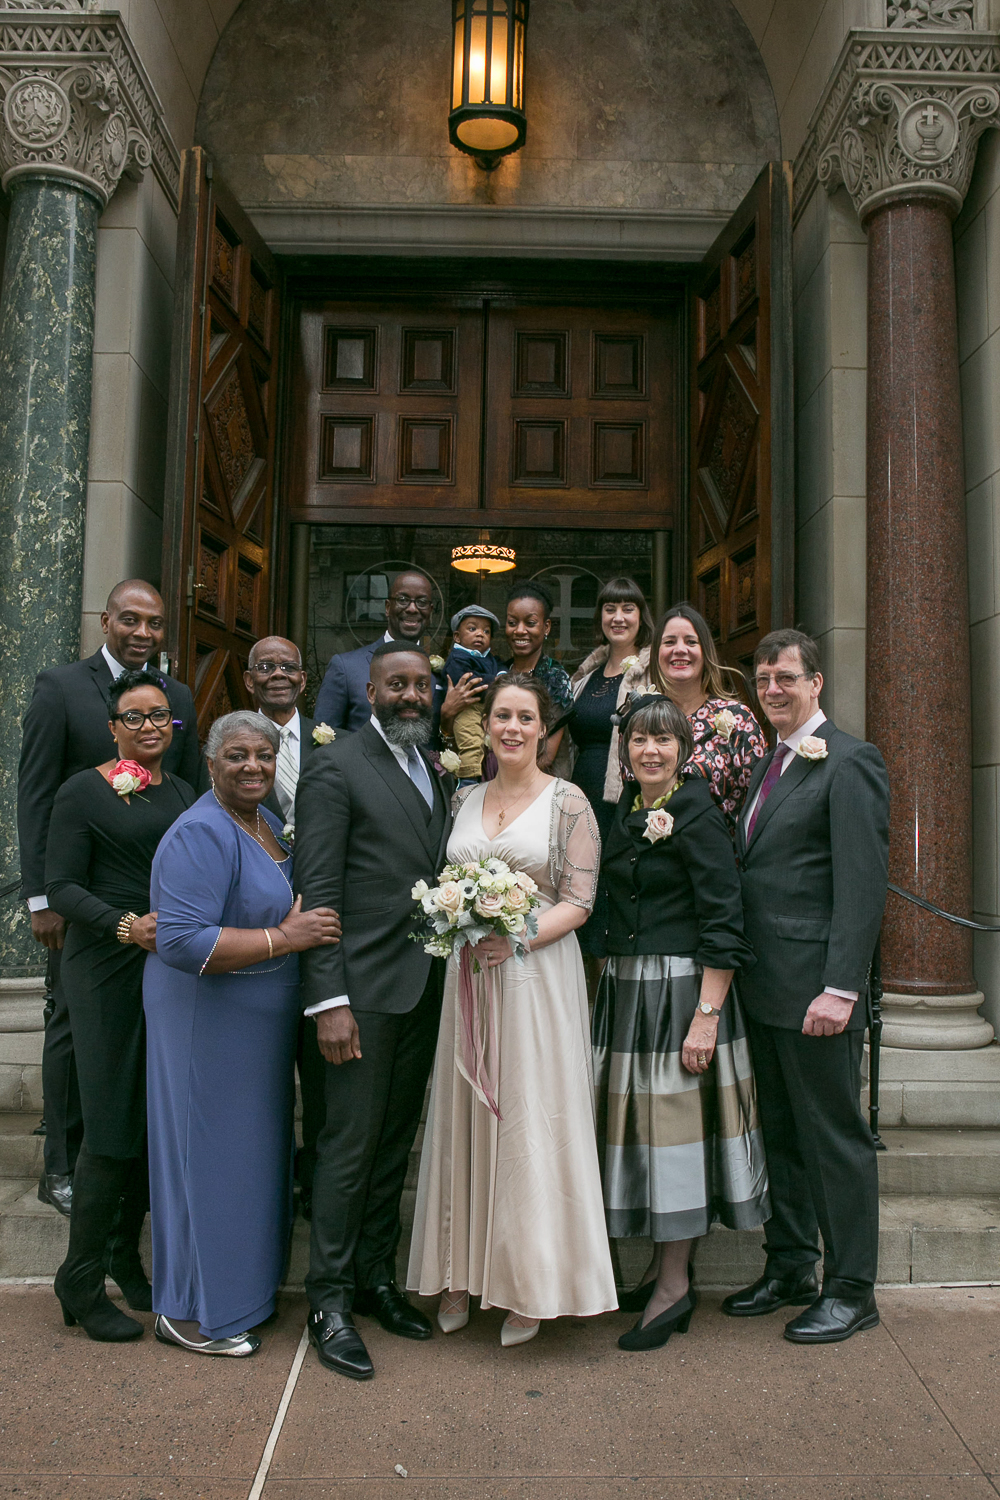 Family portrait at an intimate restaurant wedding in Manhattan. | Upper West Side Intimate Wedding | Kate & Sylvester's wedding in Manhattan.